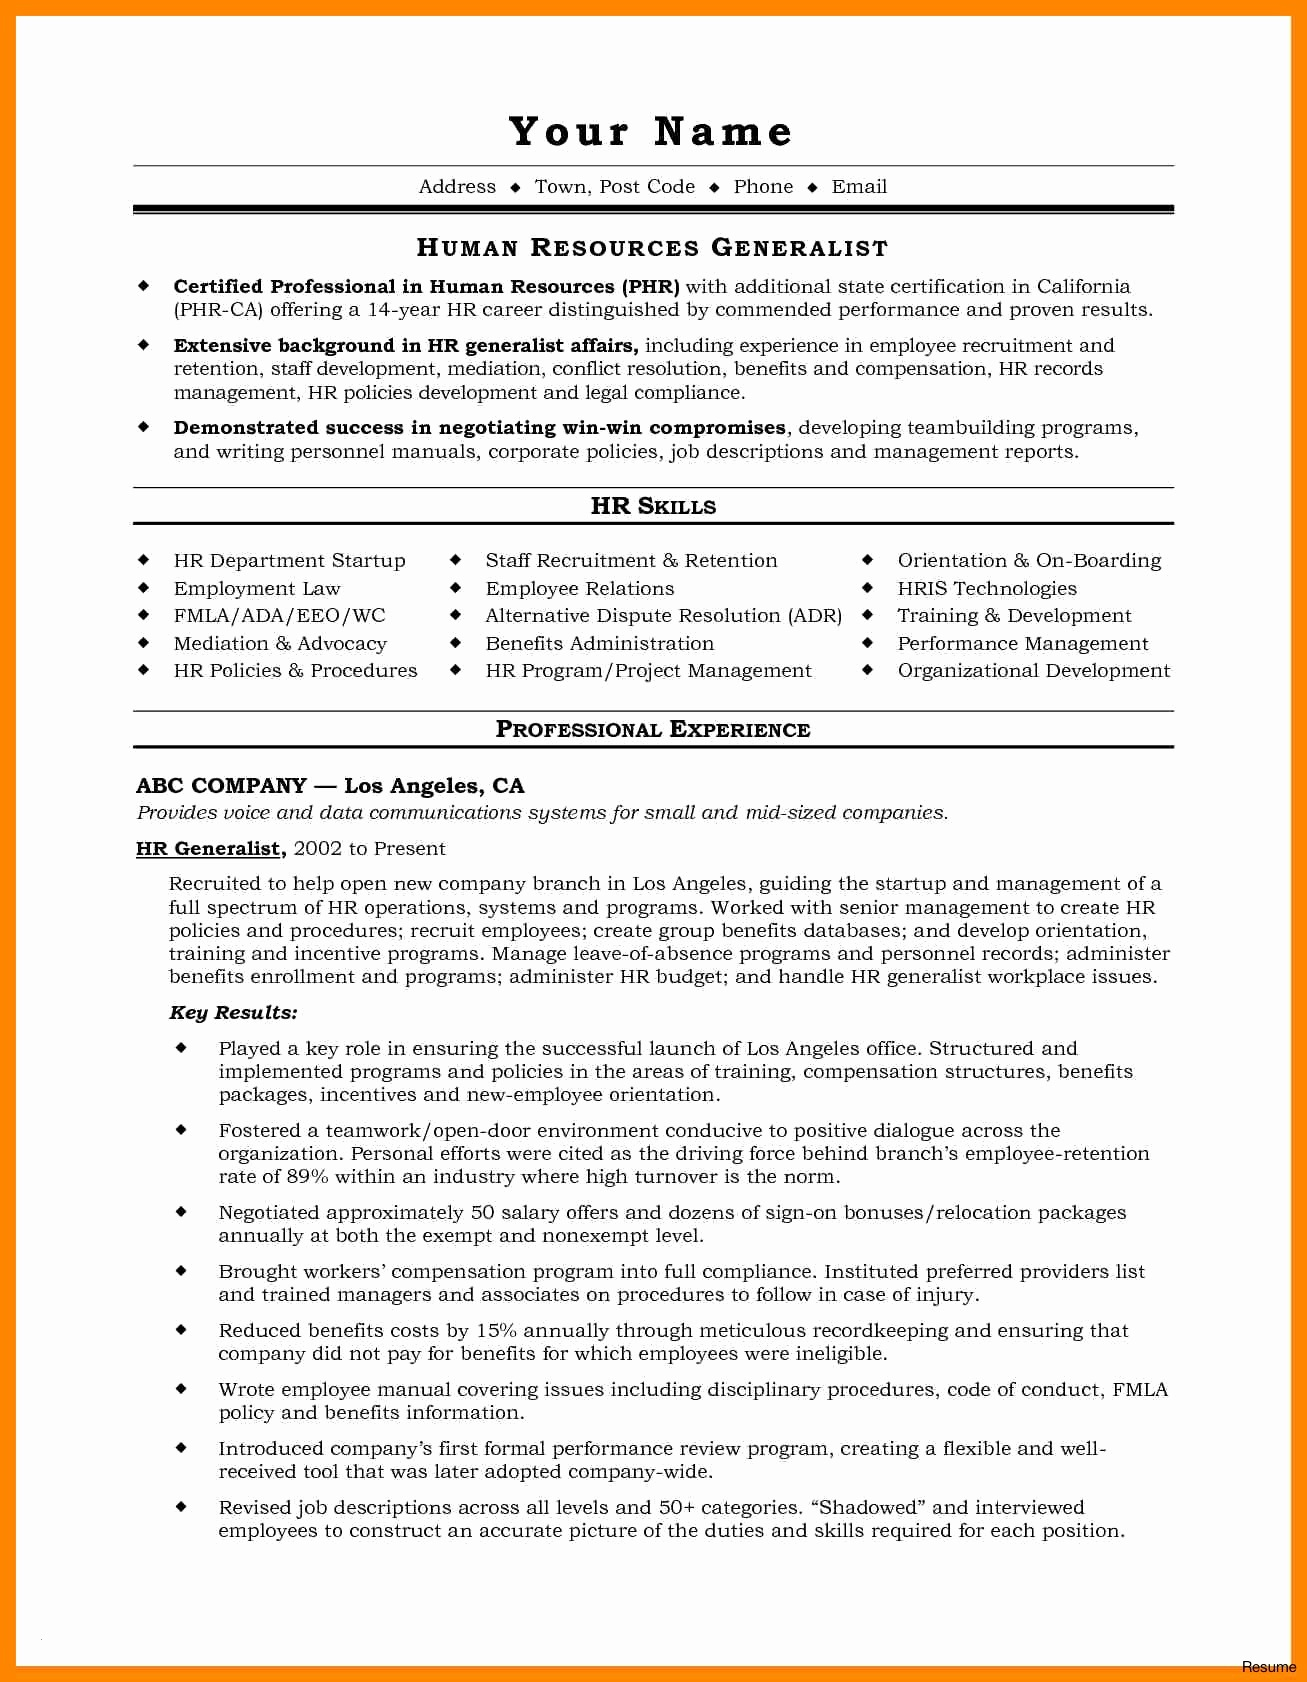 seo resume template Collection-Seo Specialist Resume Sample Lovely Email Marketing Resume Sample Unique Od Specialist Sample Resume 15-p